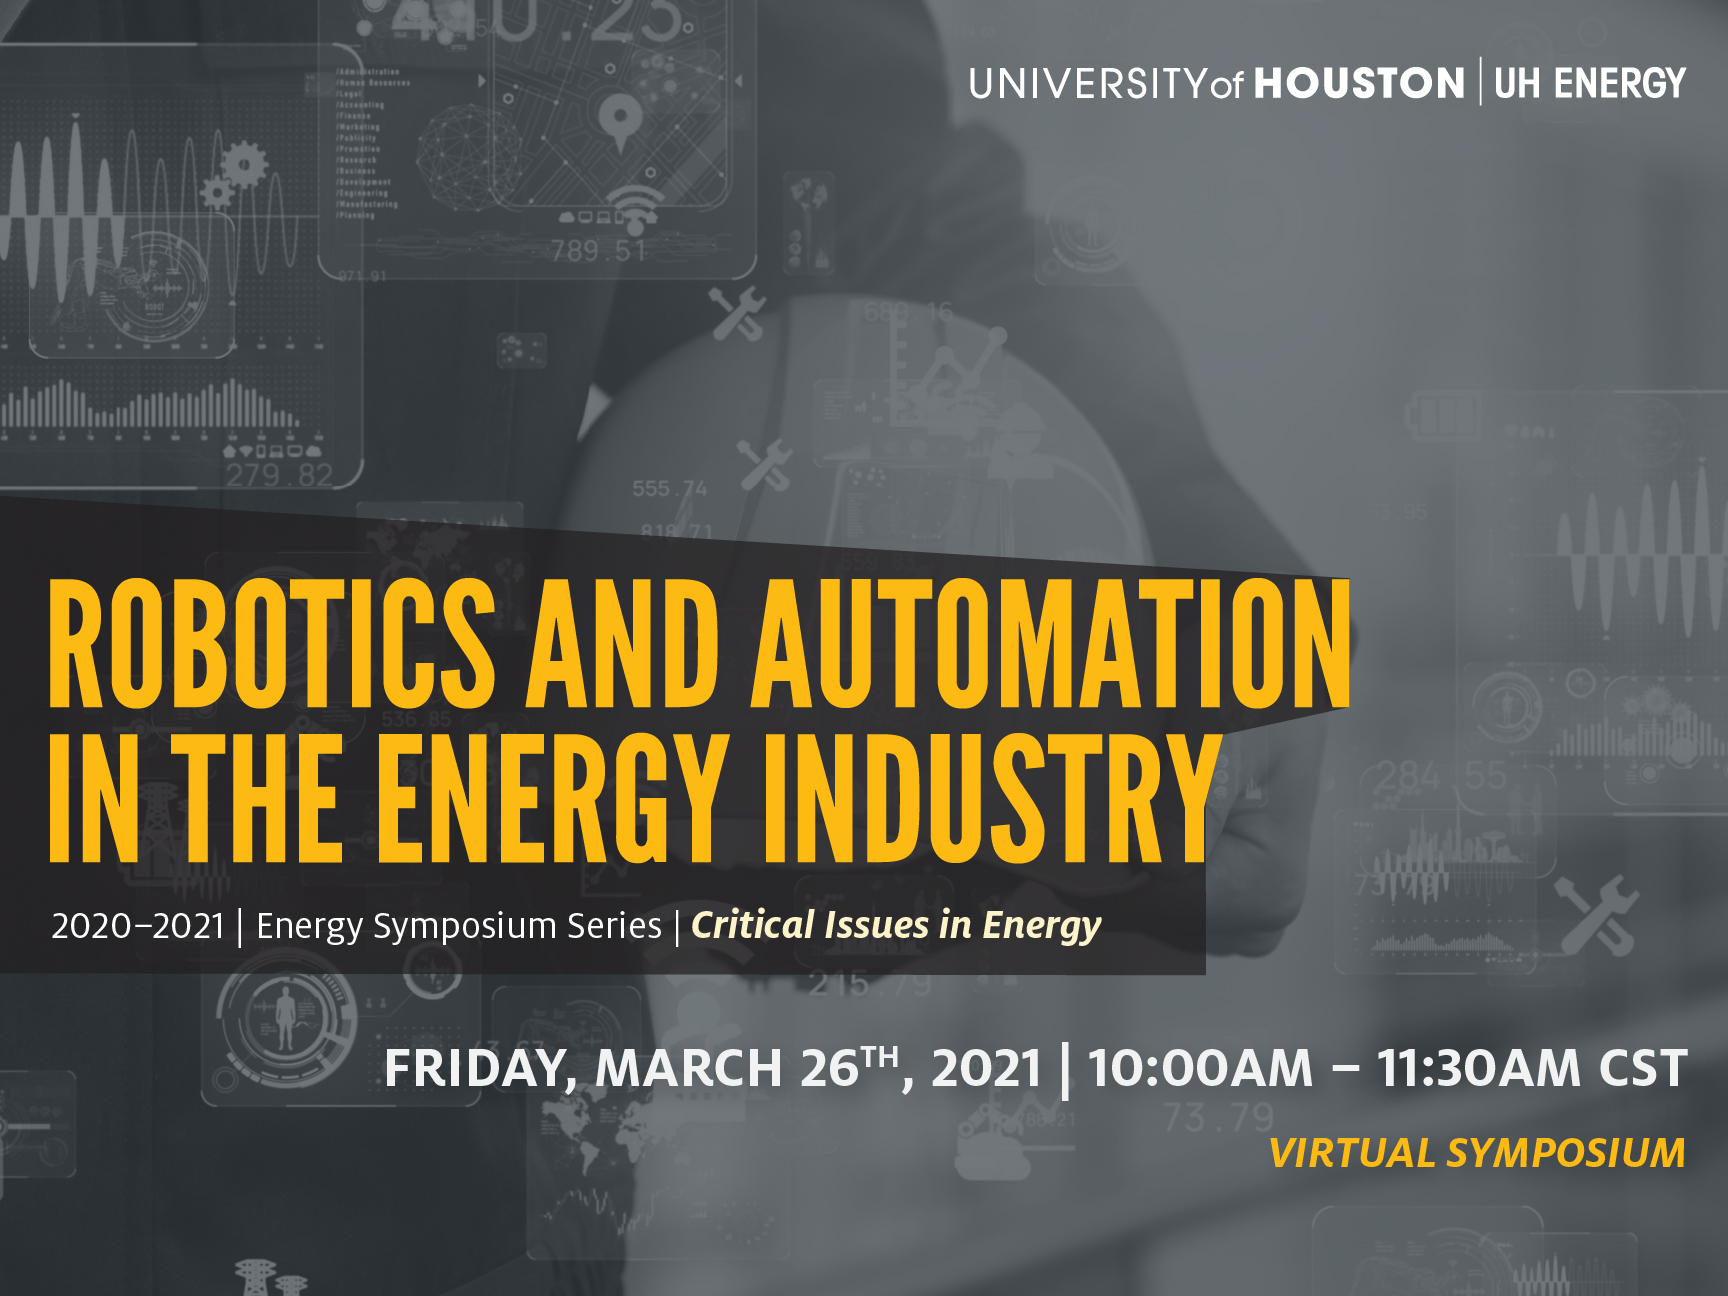 UH Energy Symposium Series: Robotics and Automation in the Energy Industry Image